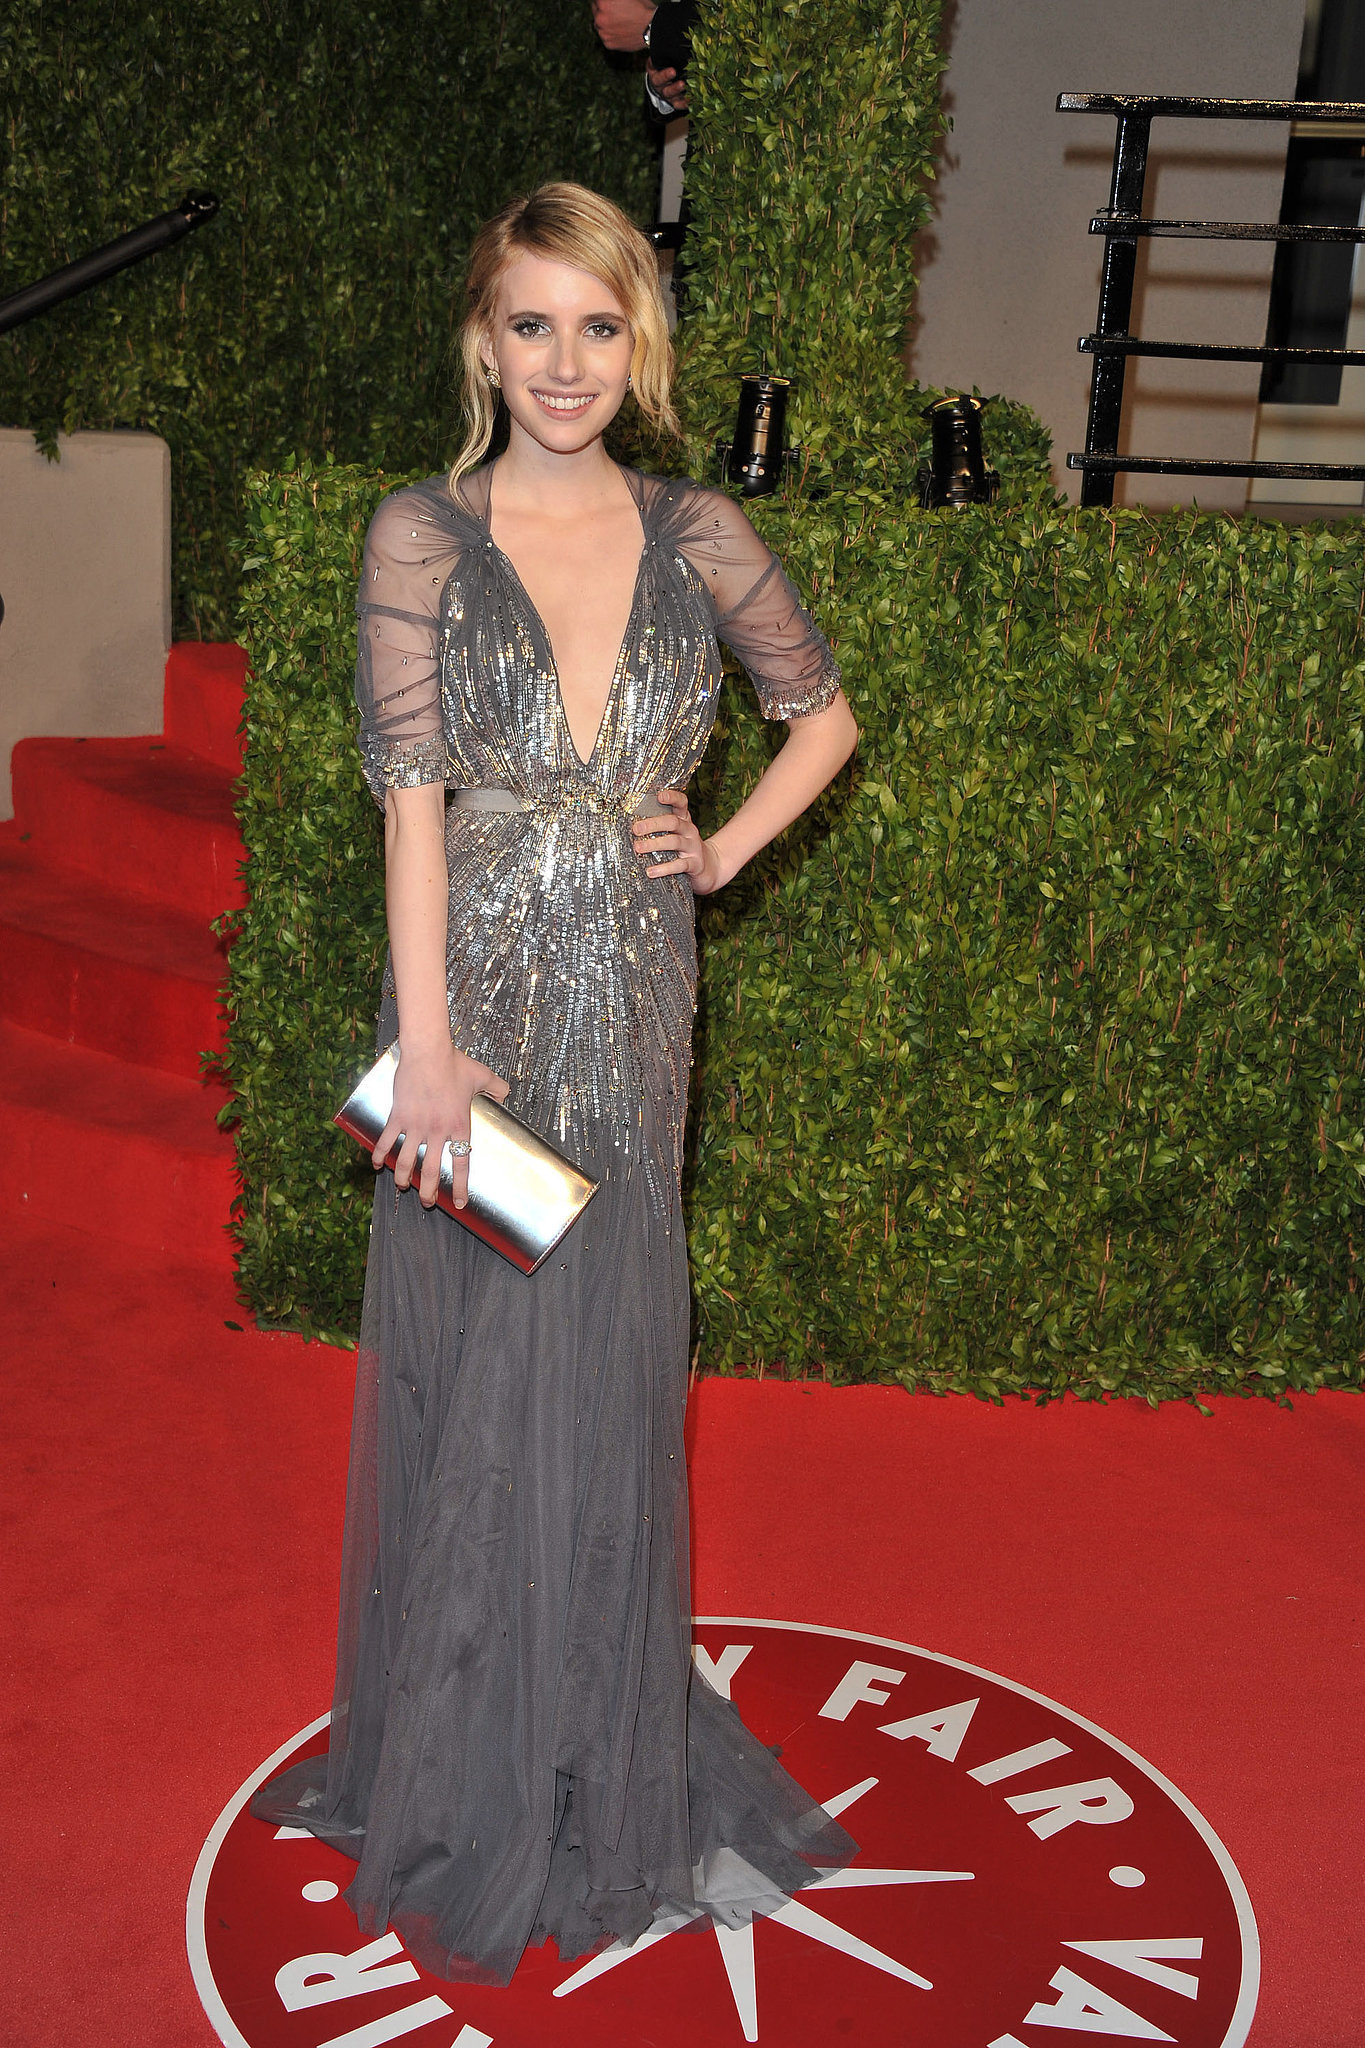 Emma glowed in a shimmering Jenny Packham gown at the Vanity Fair Oscars party in February 2011.